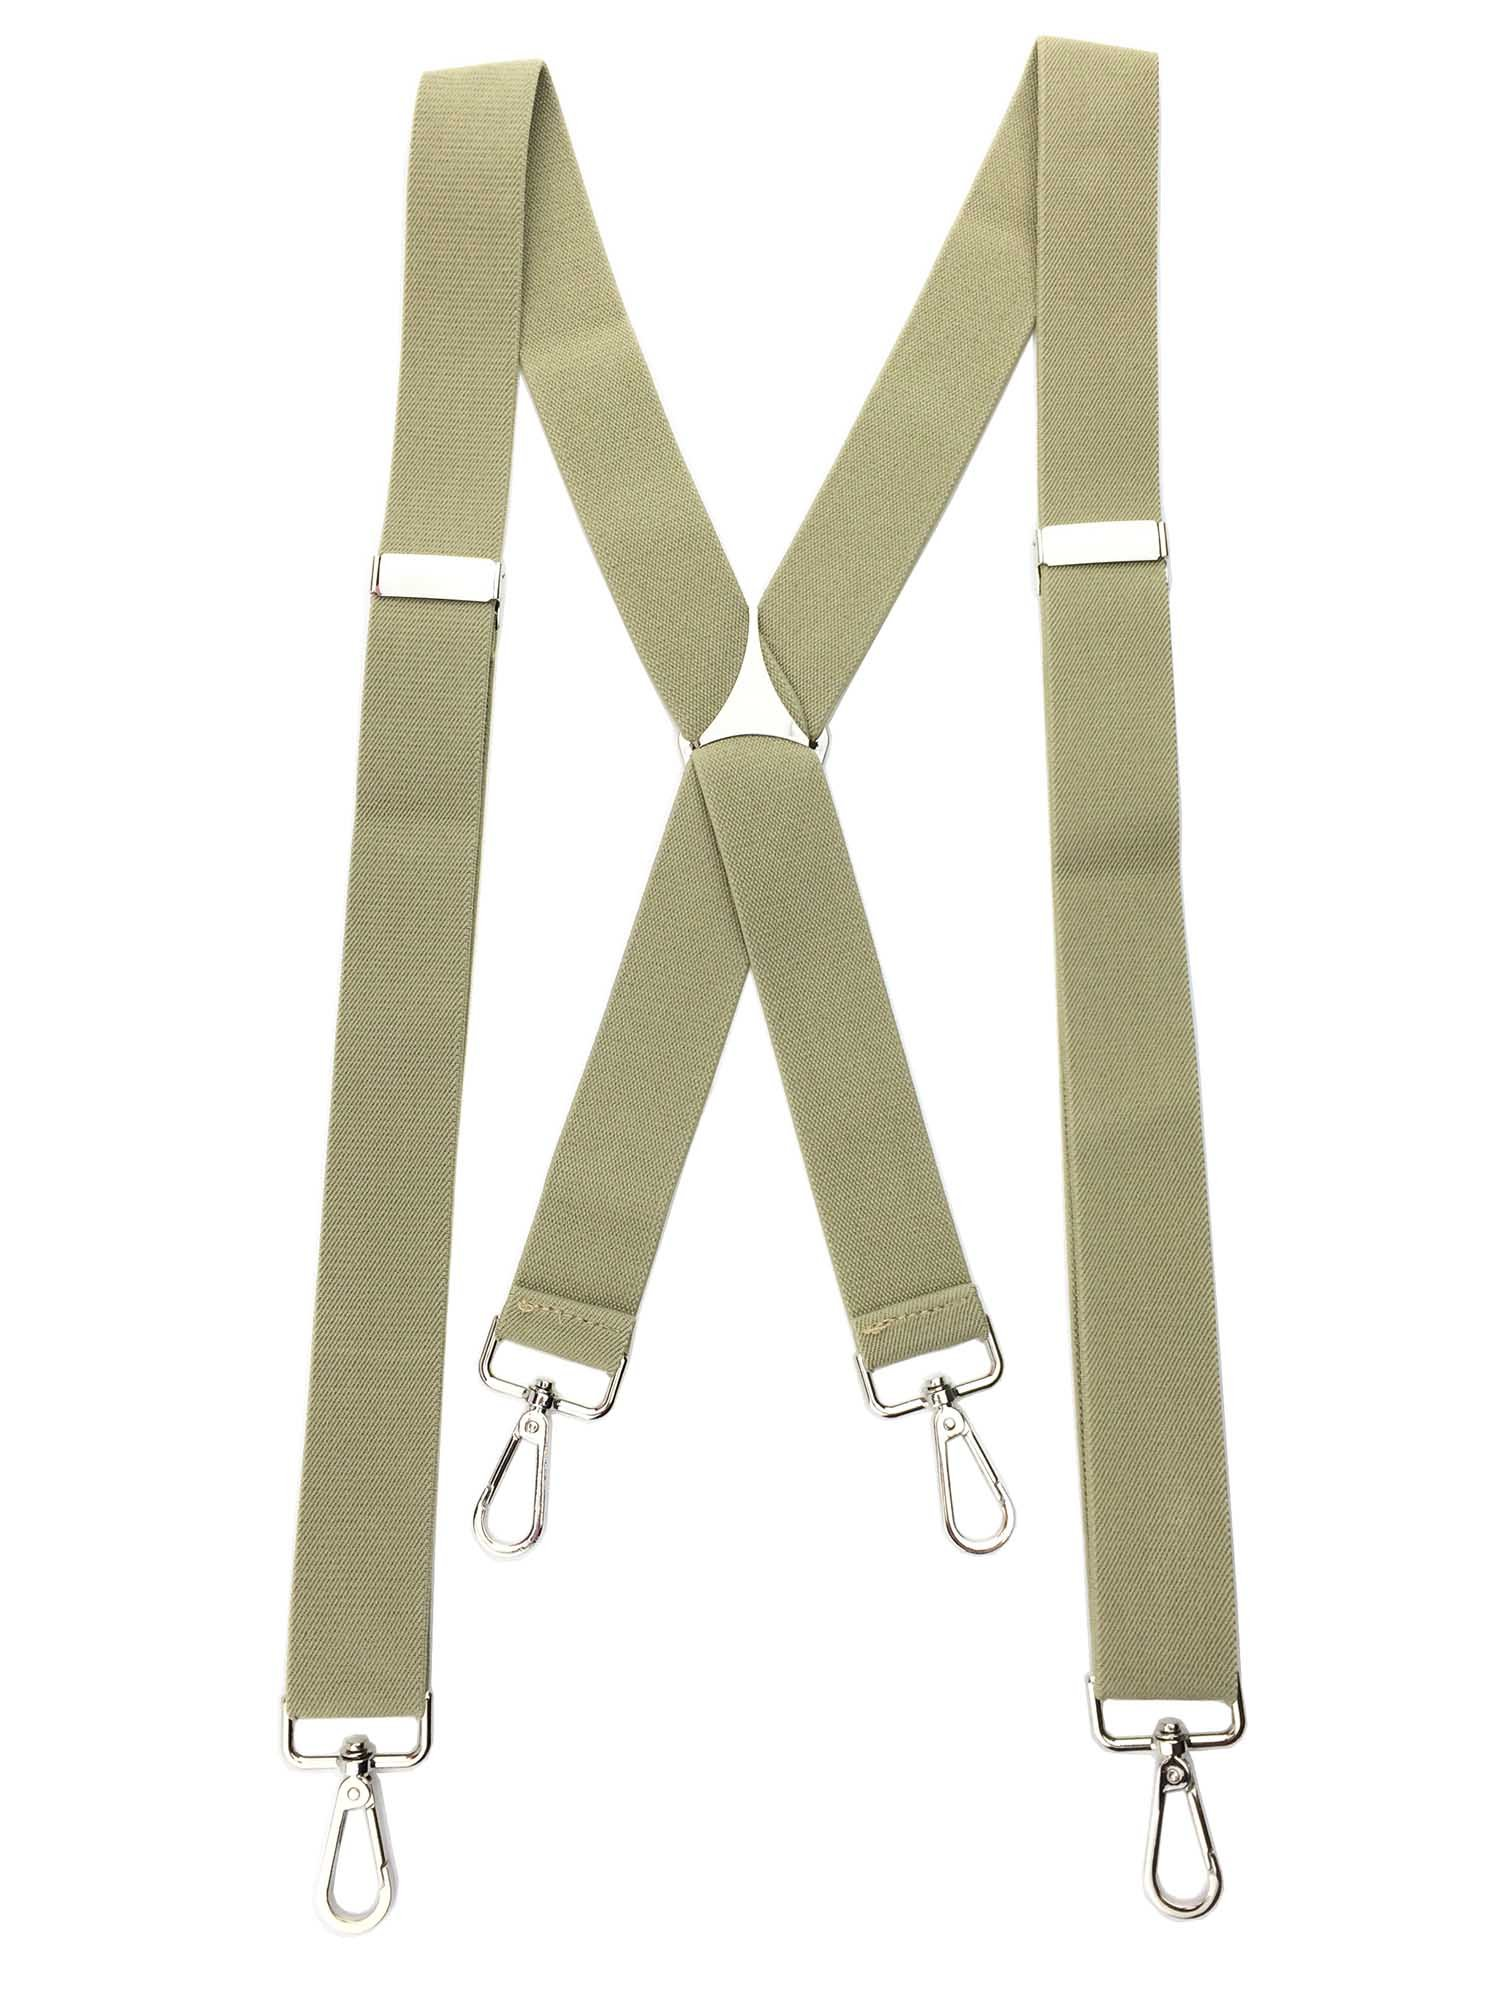 Romanlin Mens Suspenders with Swivel Hooks Heavy Duty Big and Tall Adjustable Braces Beige